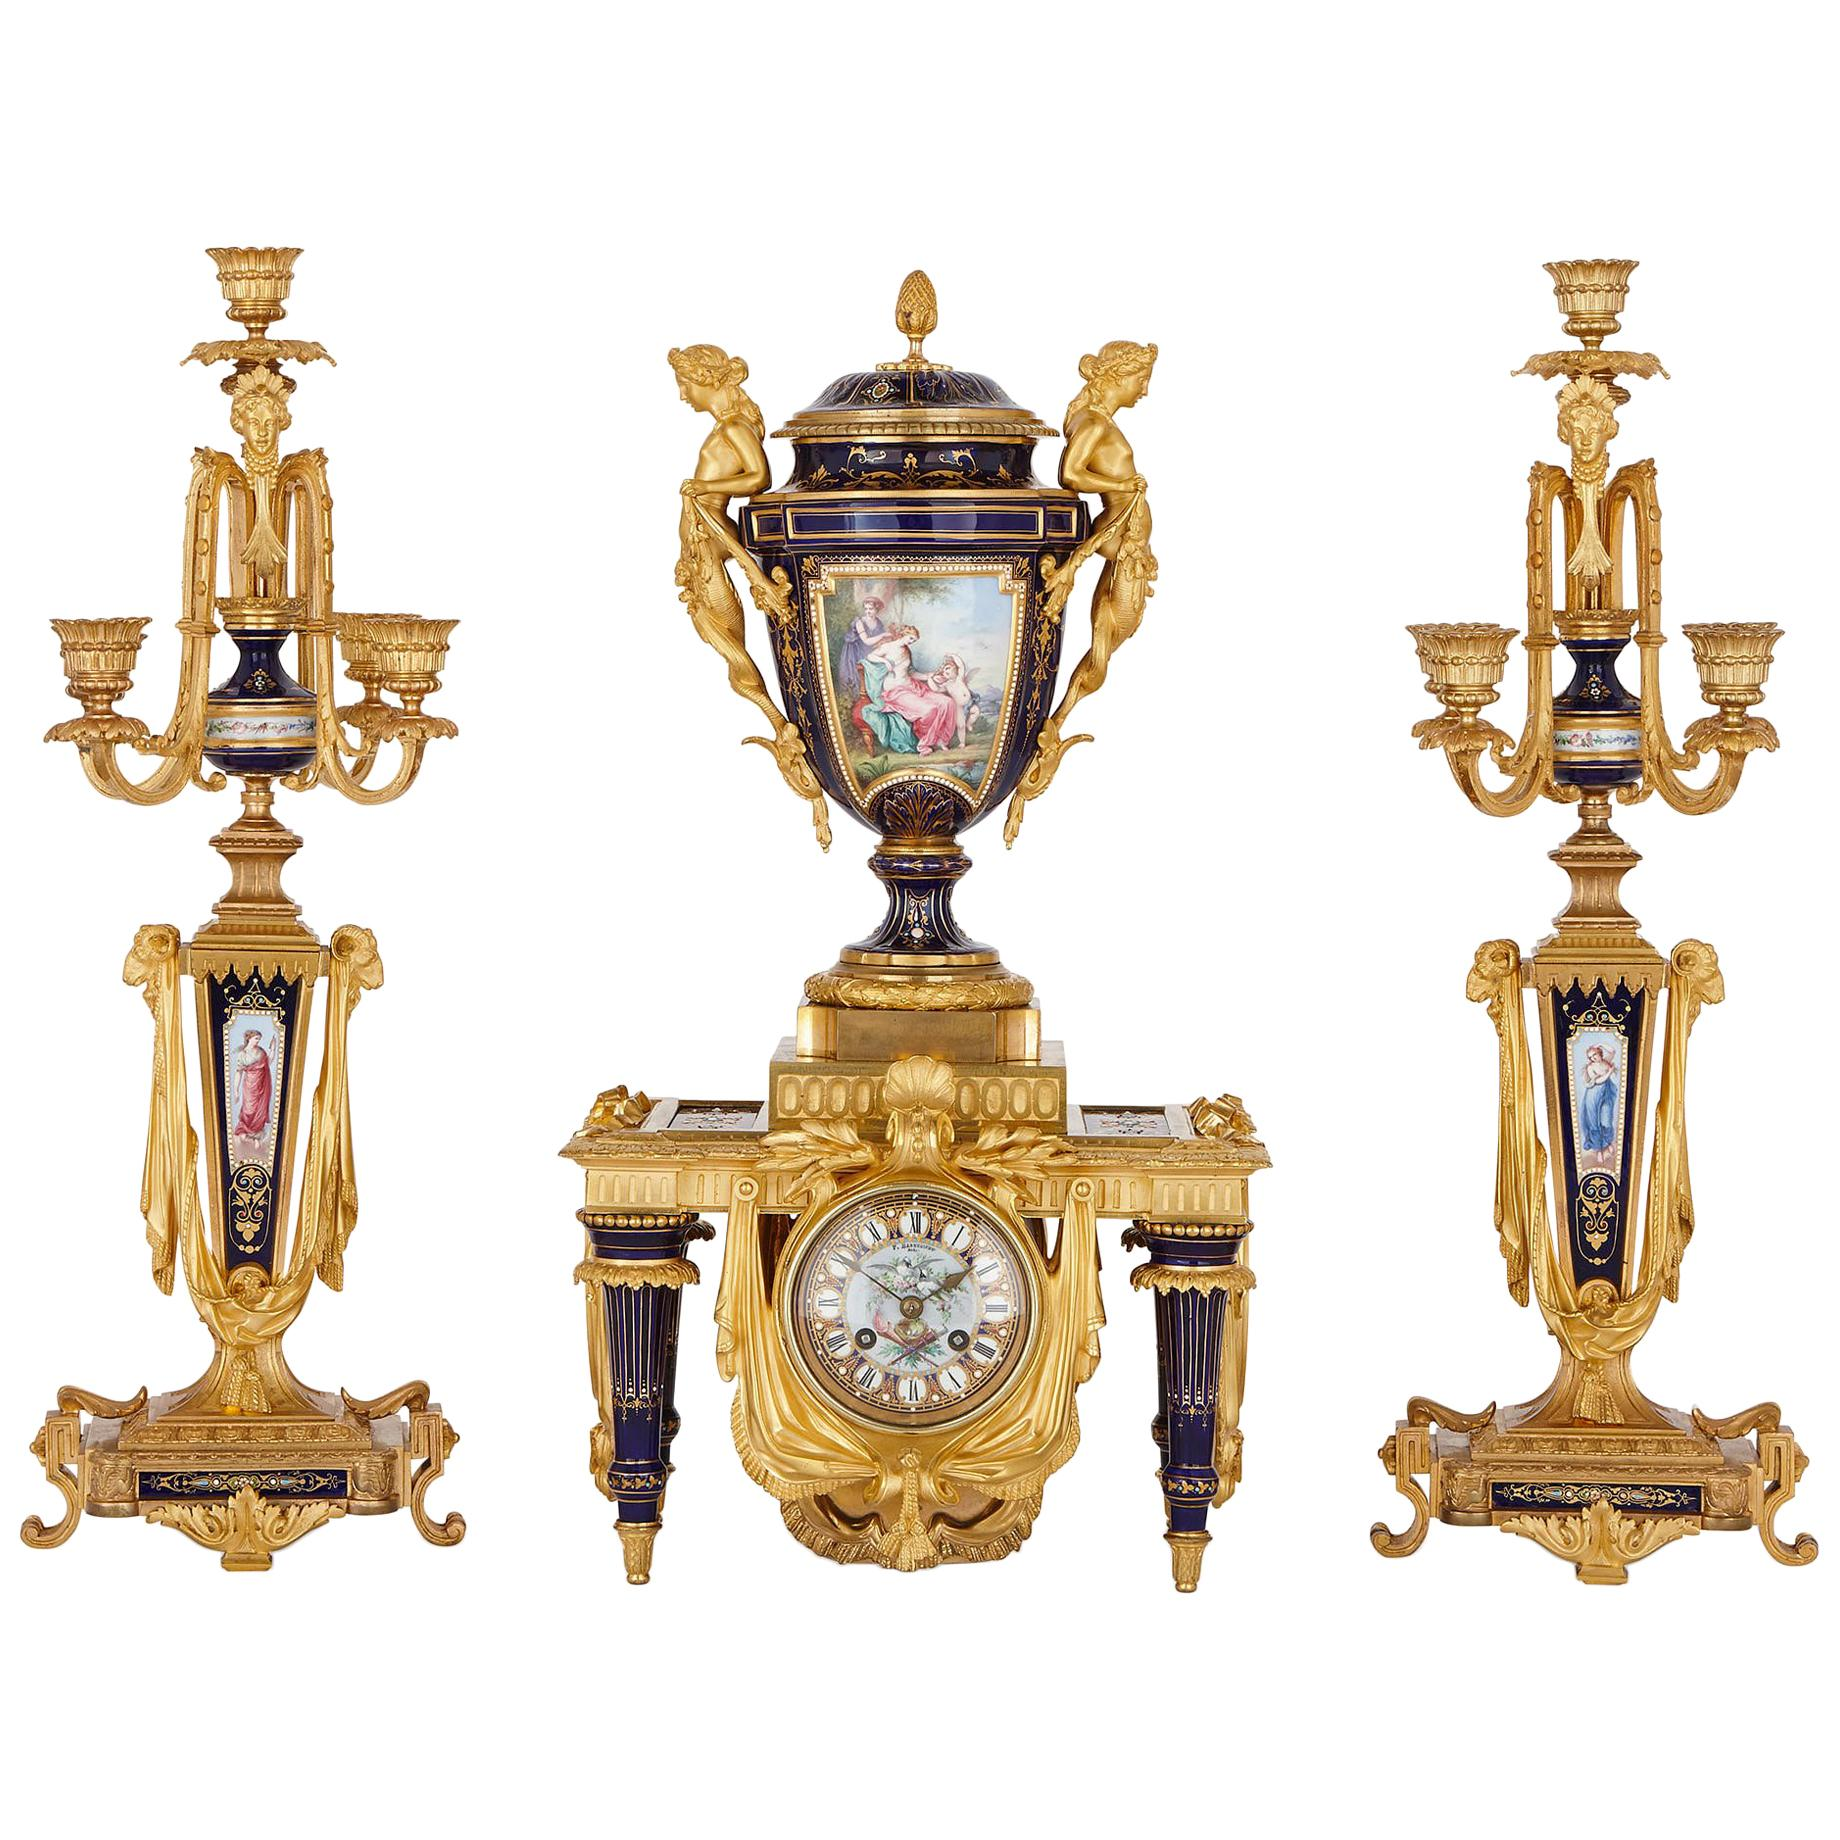 Sèvres Style Gilt Bronze-Mounted Porcelain Clock Set by Sévin and Barbedienne